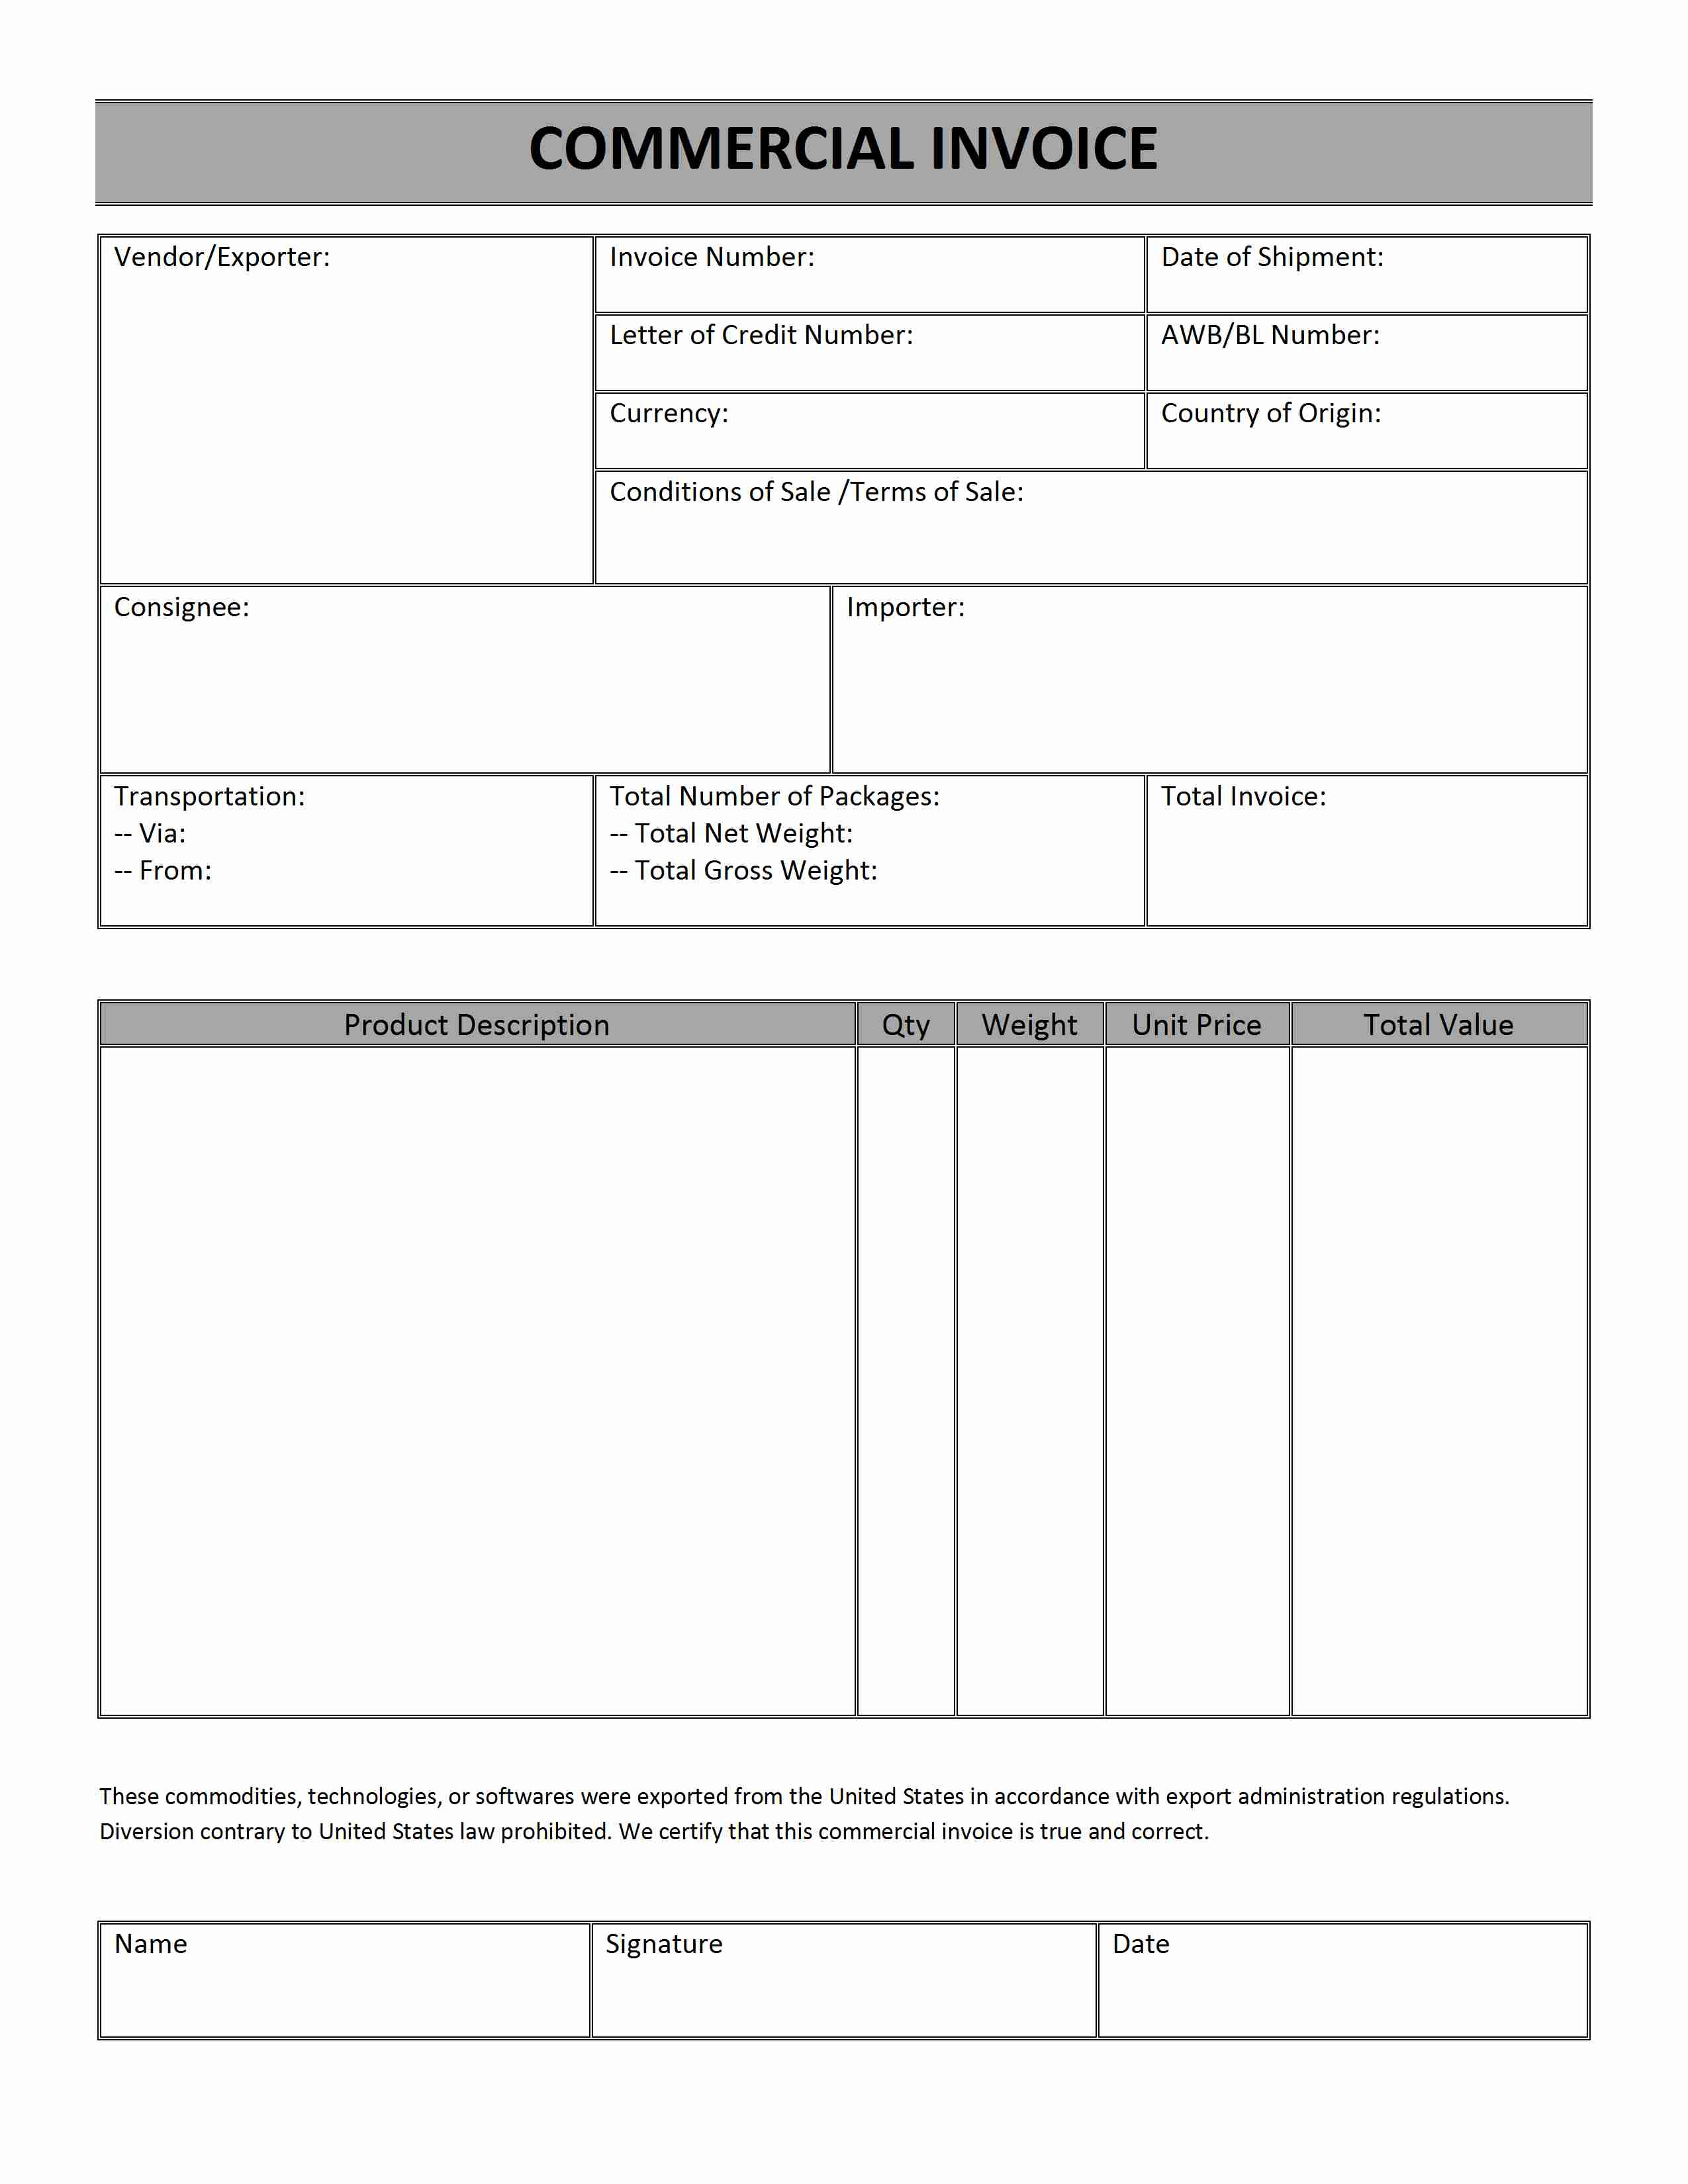 Coachoutletonlineplusus  Terrific Printable Sales Invoice Simple Invoice Form Free Invoice  With Licious Printable Receipt Free  Free Printable Raffle Tickets  Receipt   Printable With Beautiful Company Invoices Also Microsoft Word Templates Invoice In Addition Android Invoice App And Invoice Website As Well As Invoicing For Small Business Additionally Ups Commerical Invoice From Happytomco With Coachoutletonlineplusus  Licious Printable Sales Invoice Simple Invoice Form Free Invoice  With Beautiful Printable Receipt Free  Free Printable Raffle Tickets  Receipt   Printable And Terrific Company Invoices Also Microsoft Word Templates Invoice In Addition Android Invoice App From Happytomco